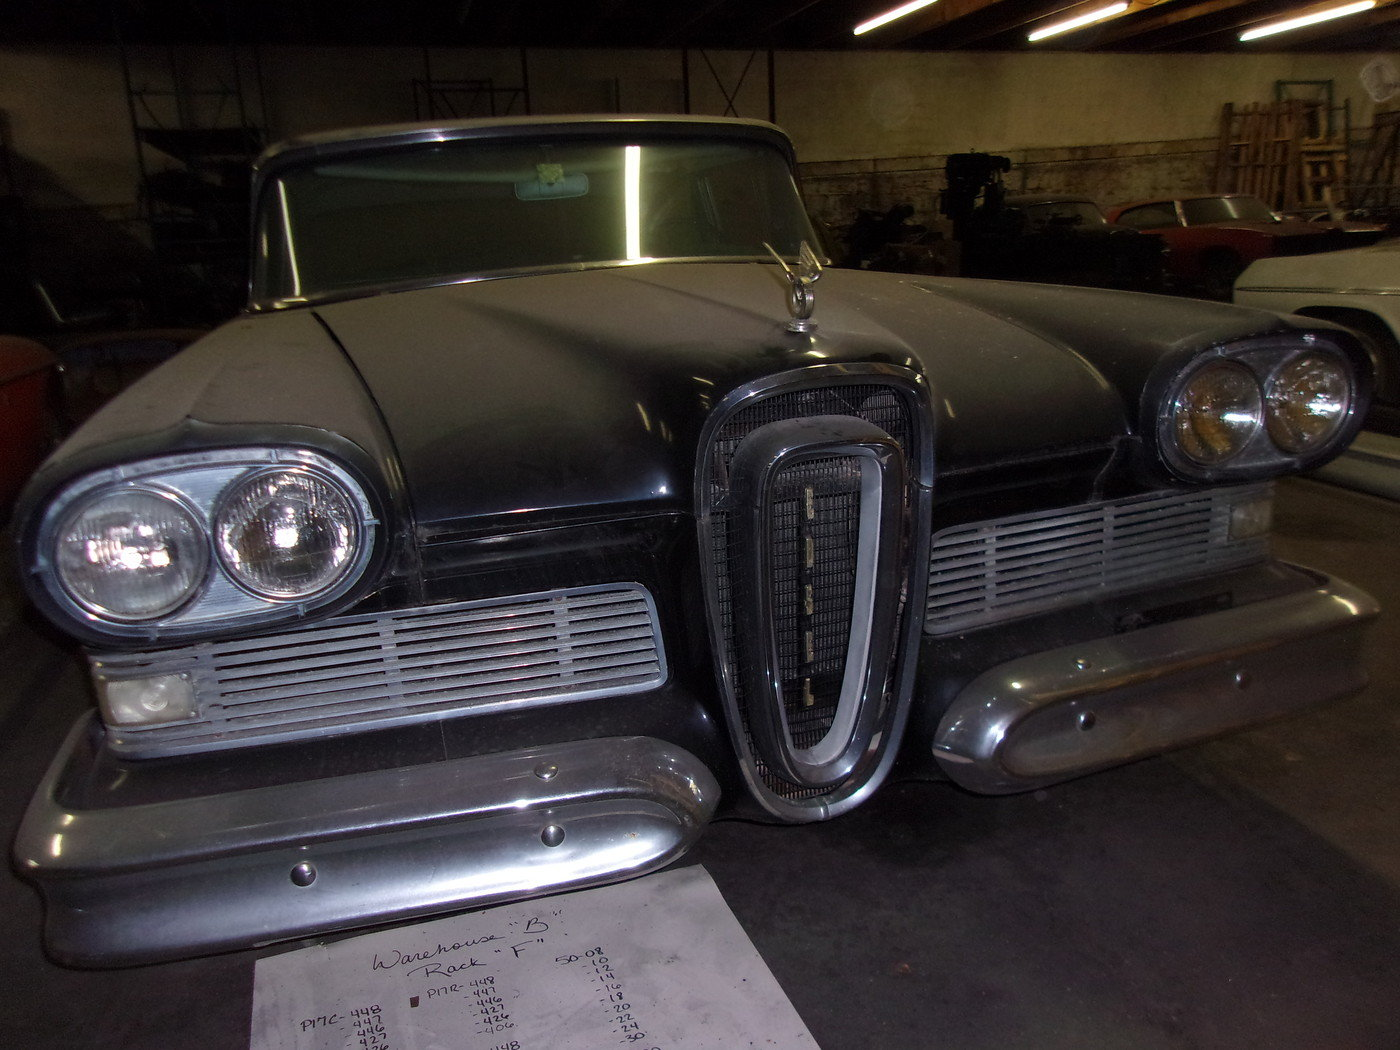 1958 Edsel Pacer 4dr Sedan For Sale (picture 1 of 6)